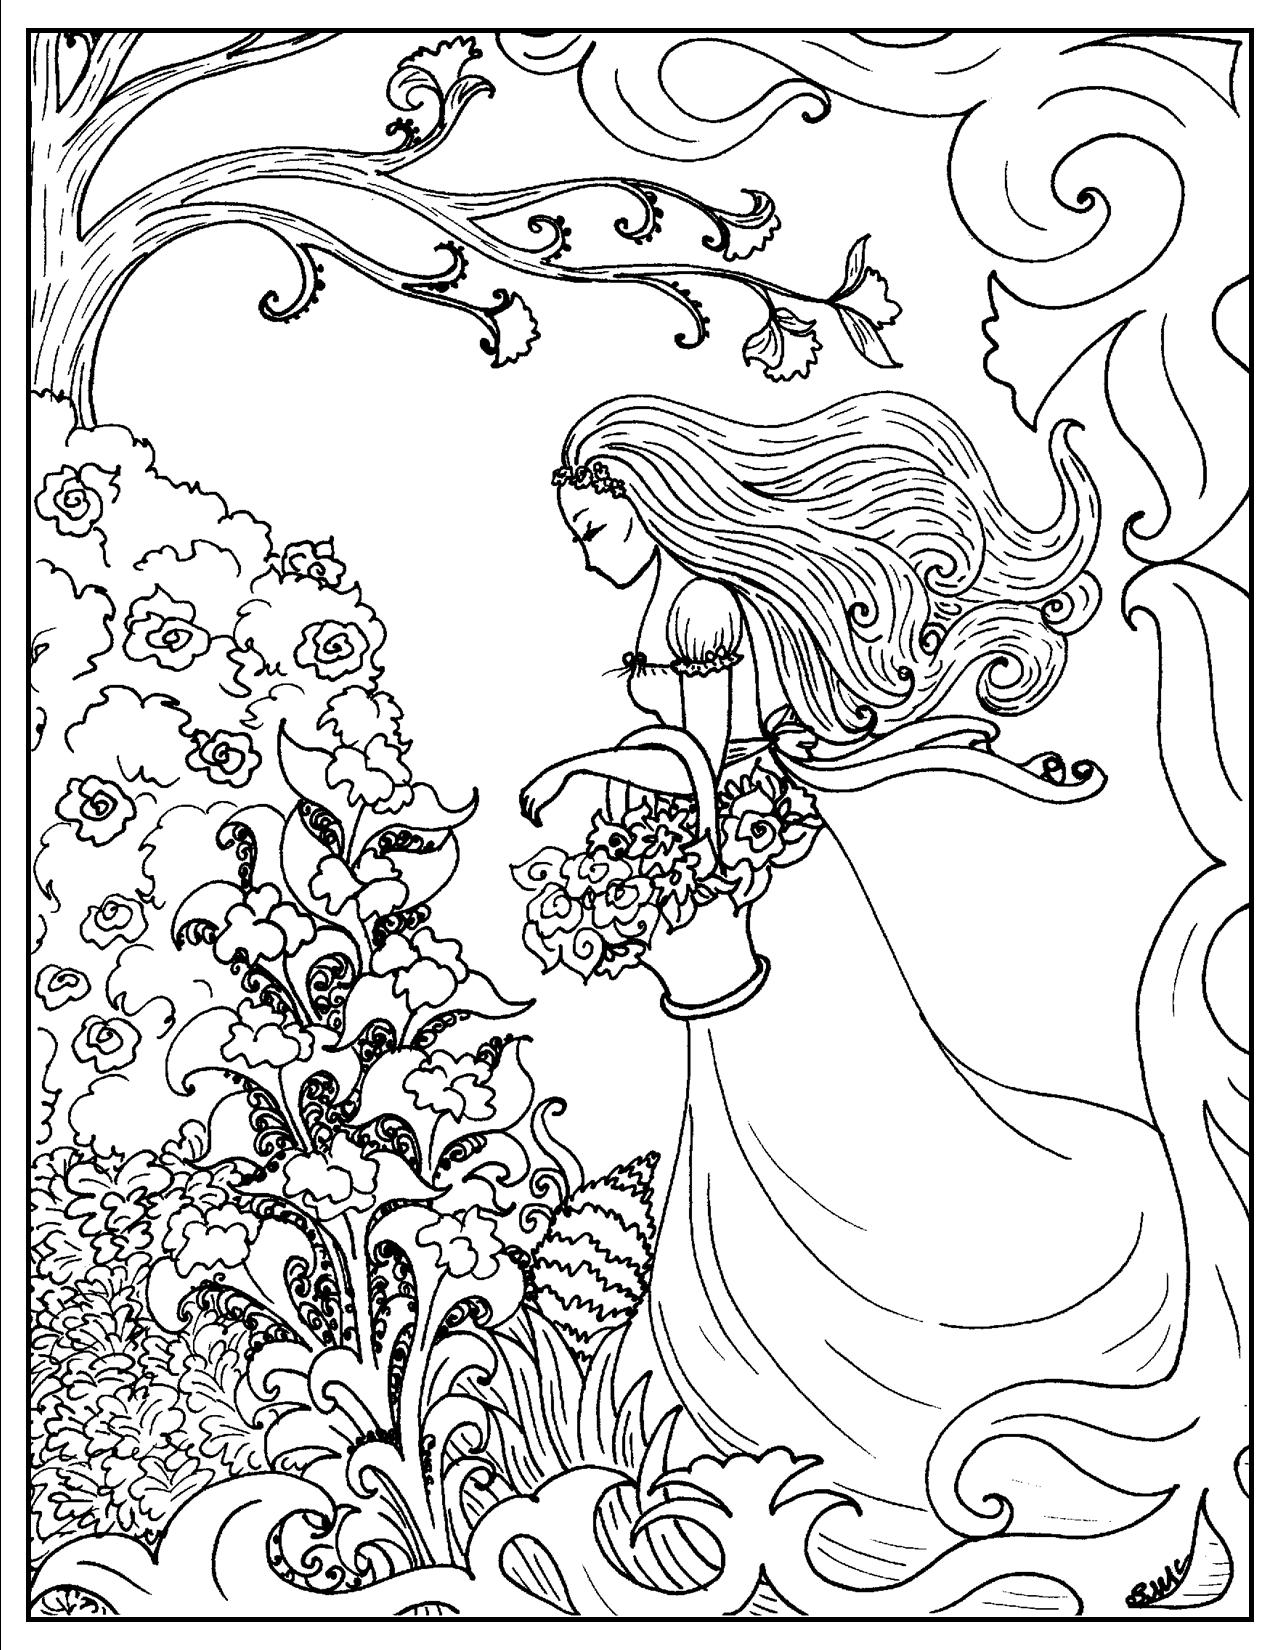 S mac coloring pages - Art Nouveau Coloring Pages To Download And Print For Free